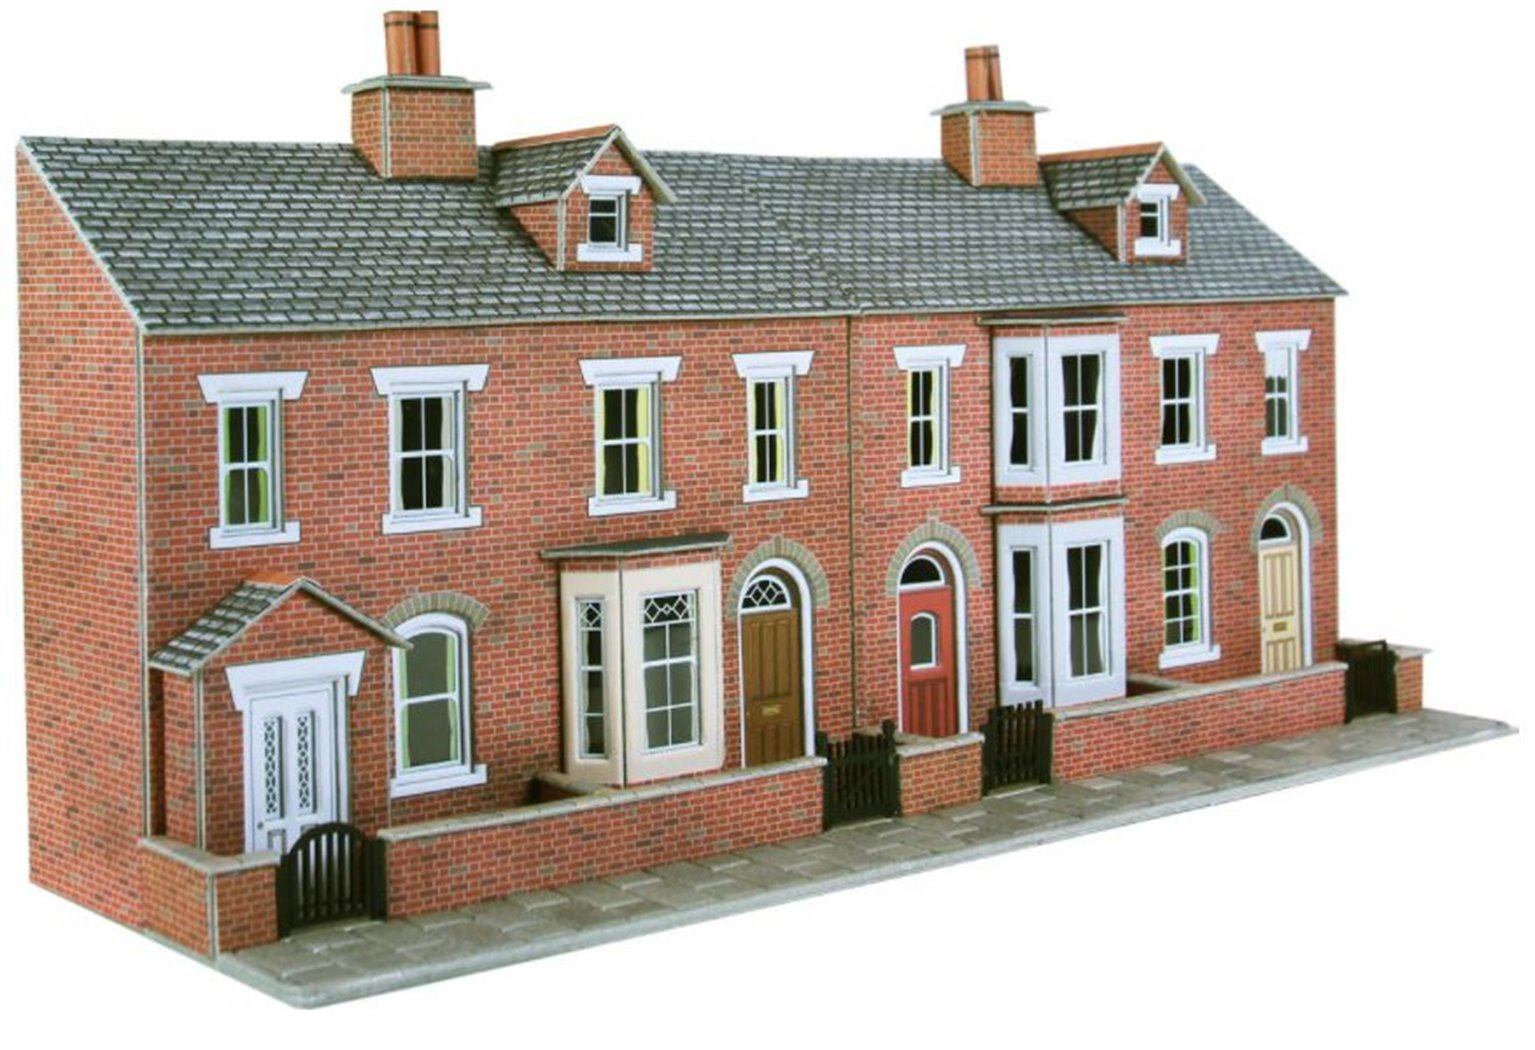 Low Relief Terraced House Fronts - Brick